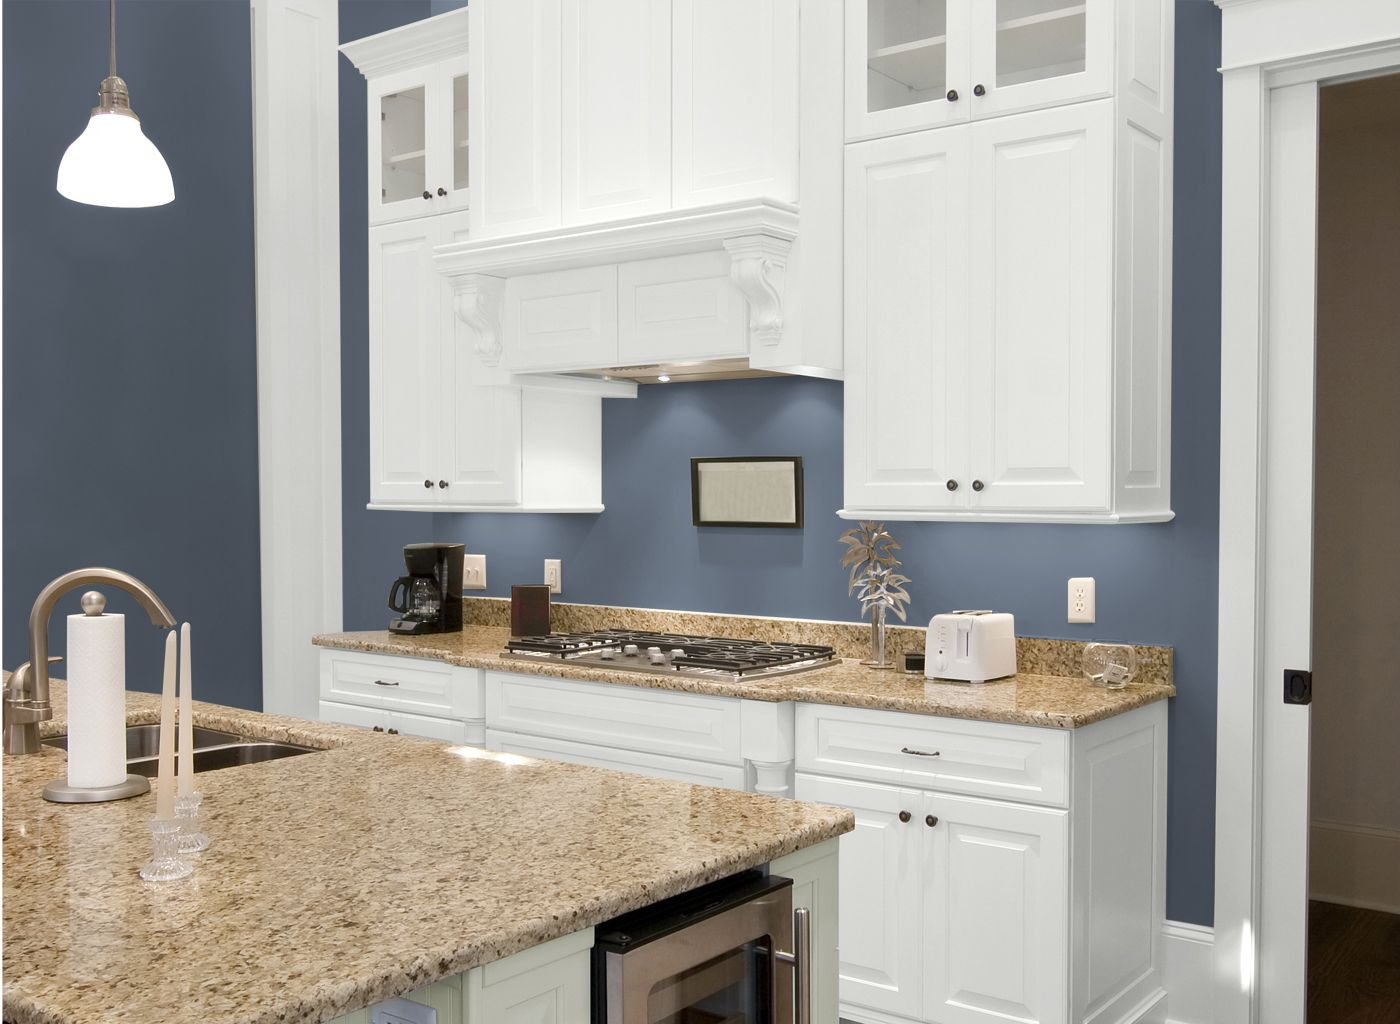 Kitchen in BlueGrey Slate I LOVE the color  Our